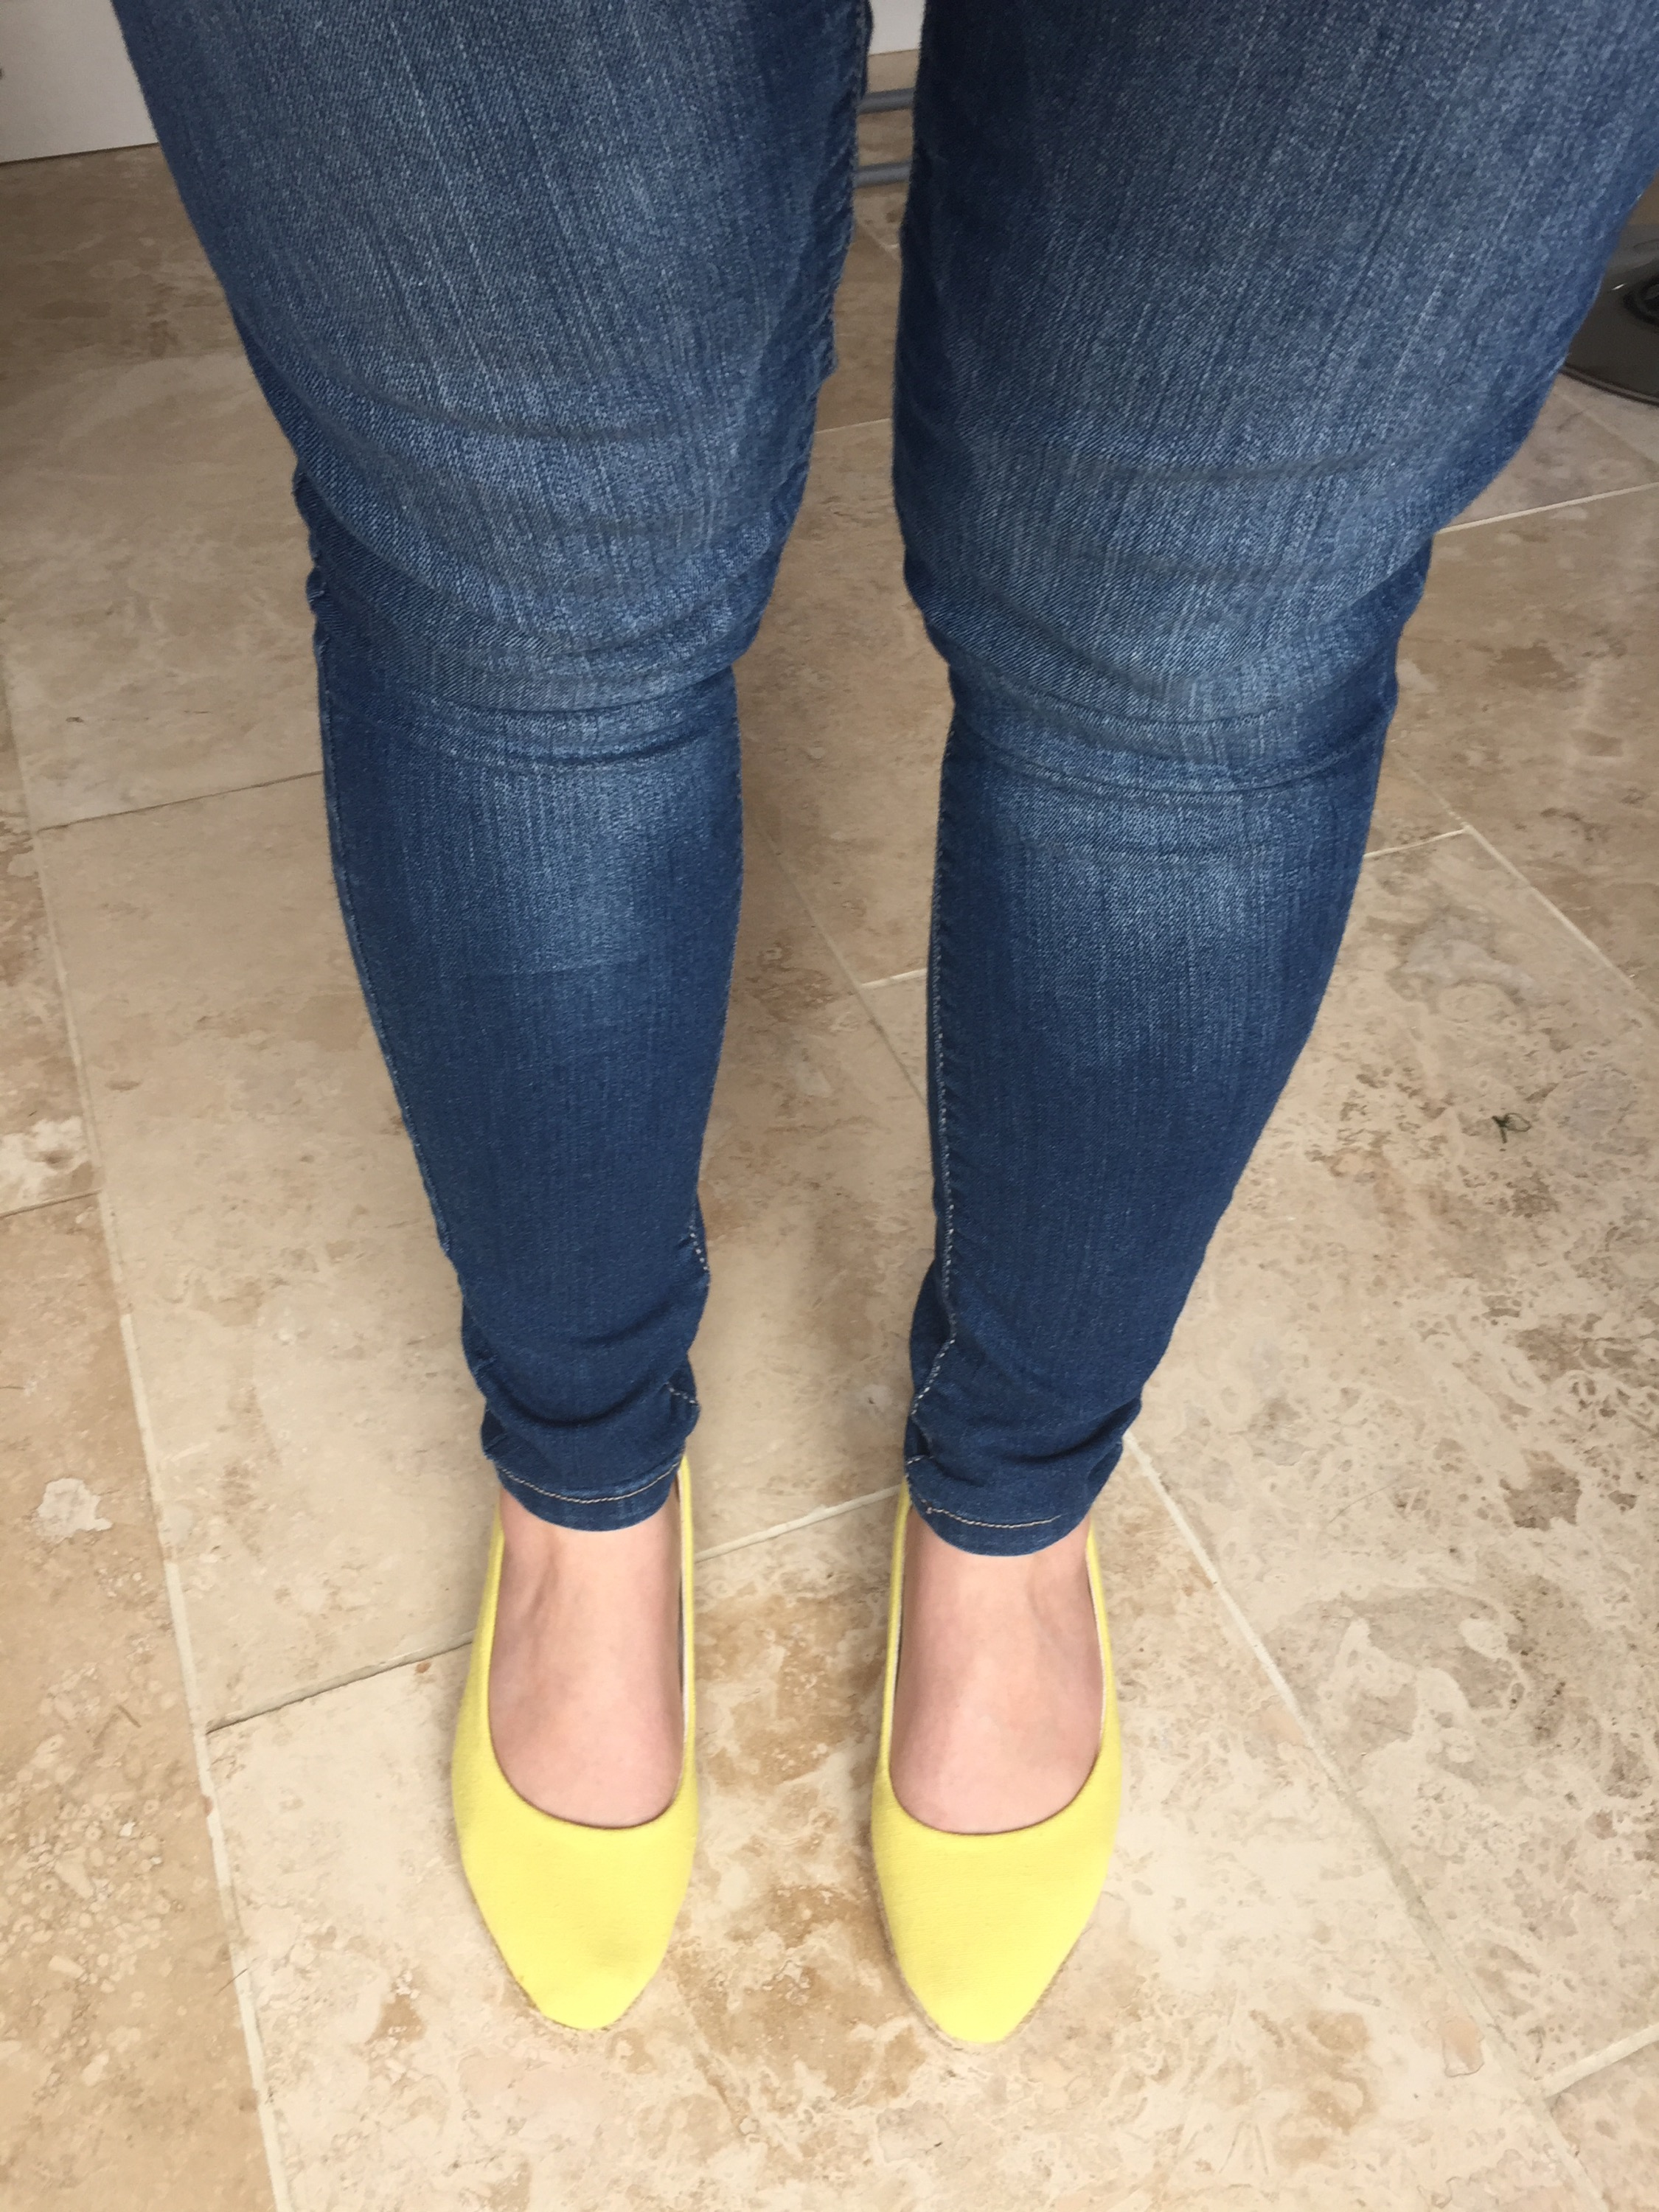 jeans and yellow shoes outfit of the day #ootd always a Blue Sky Girl blog